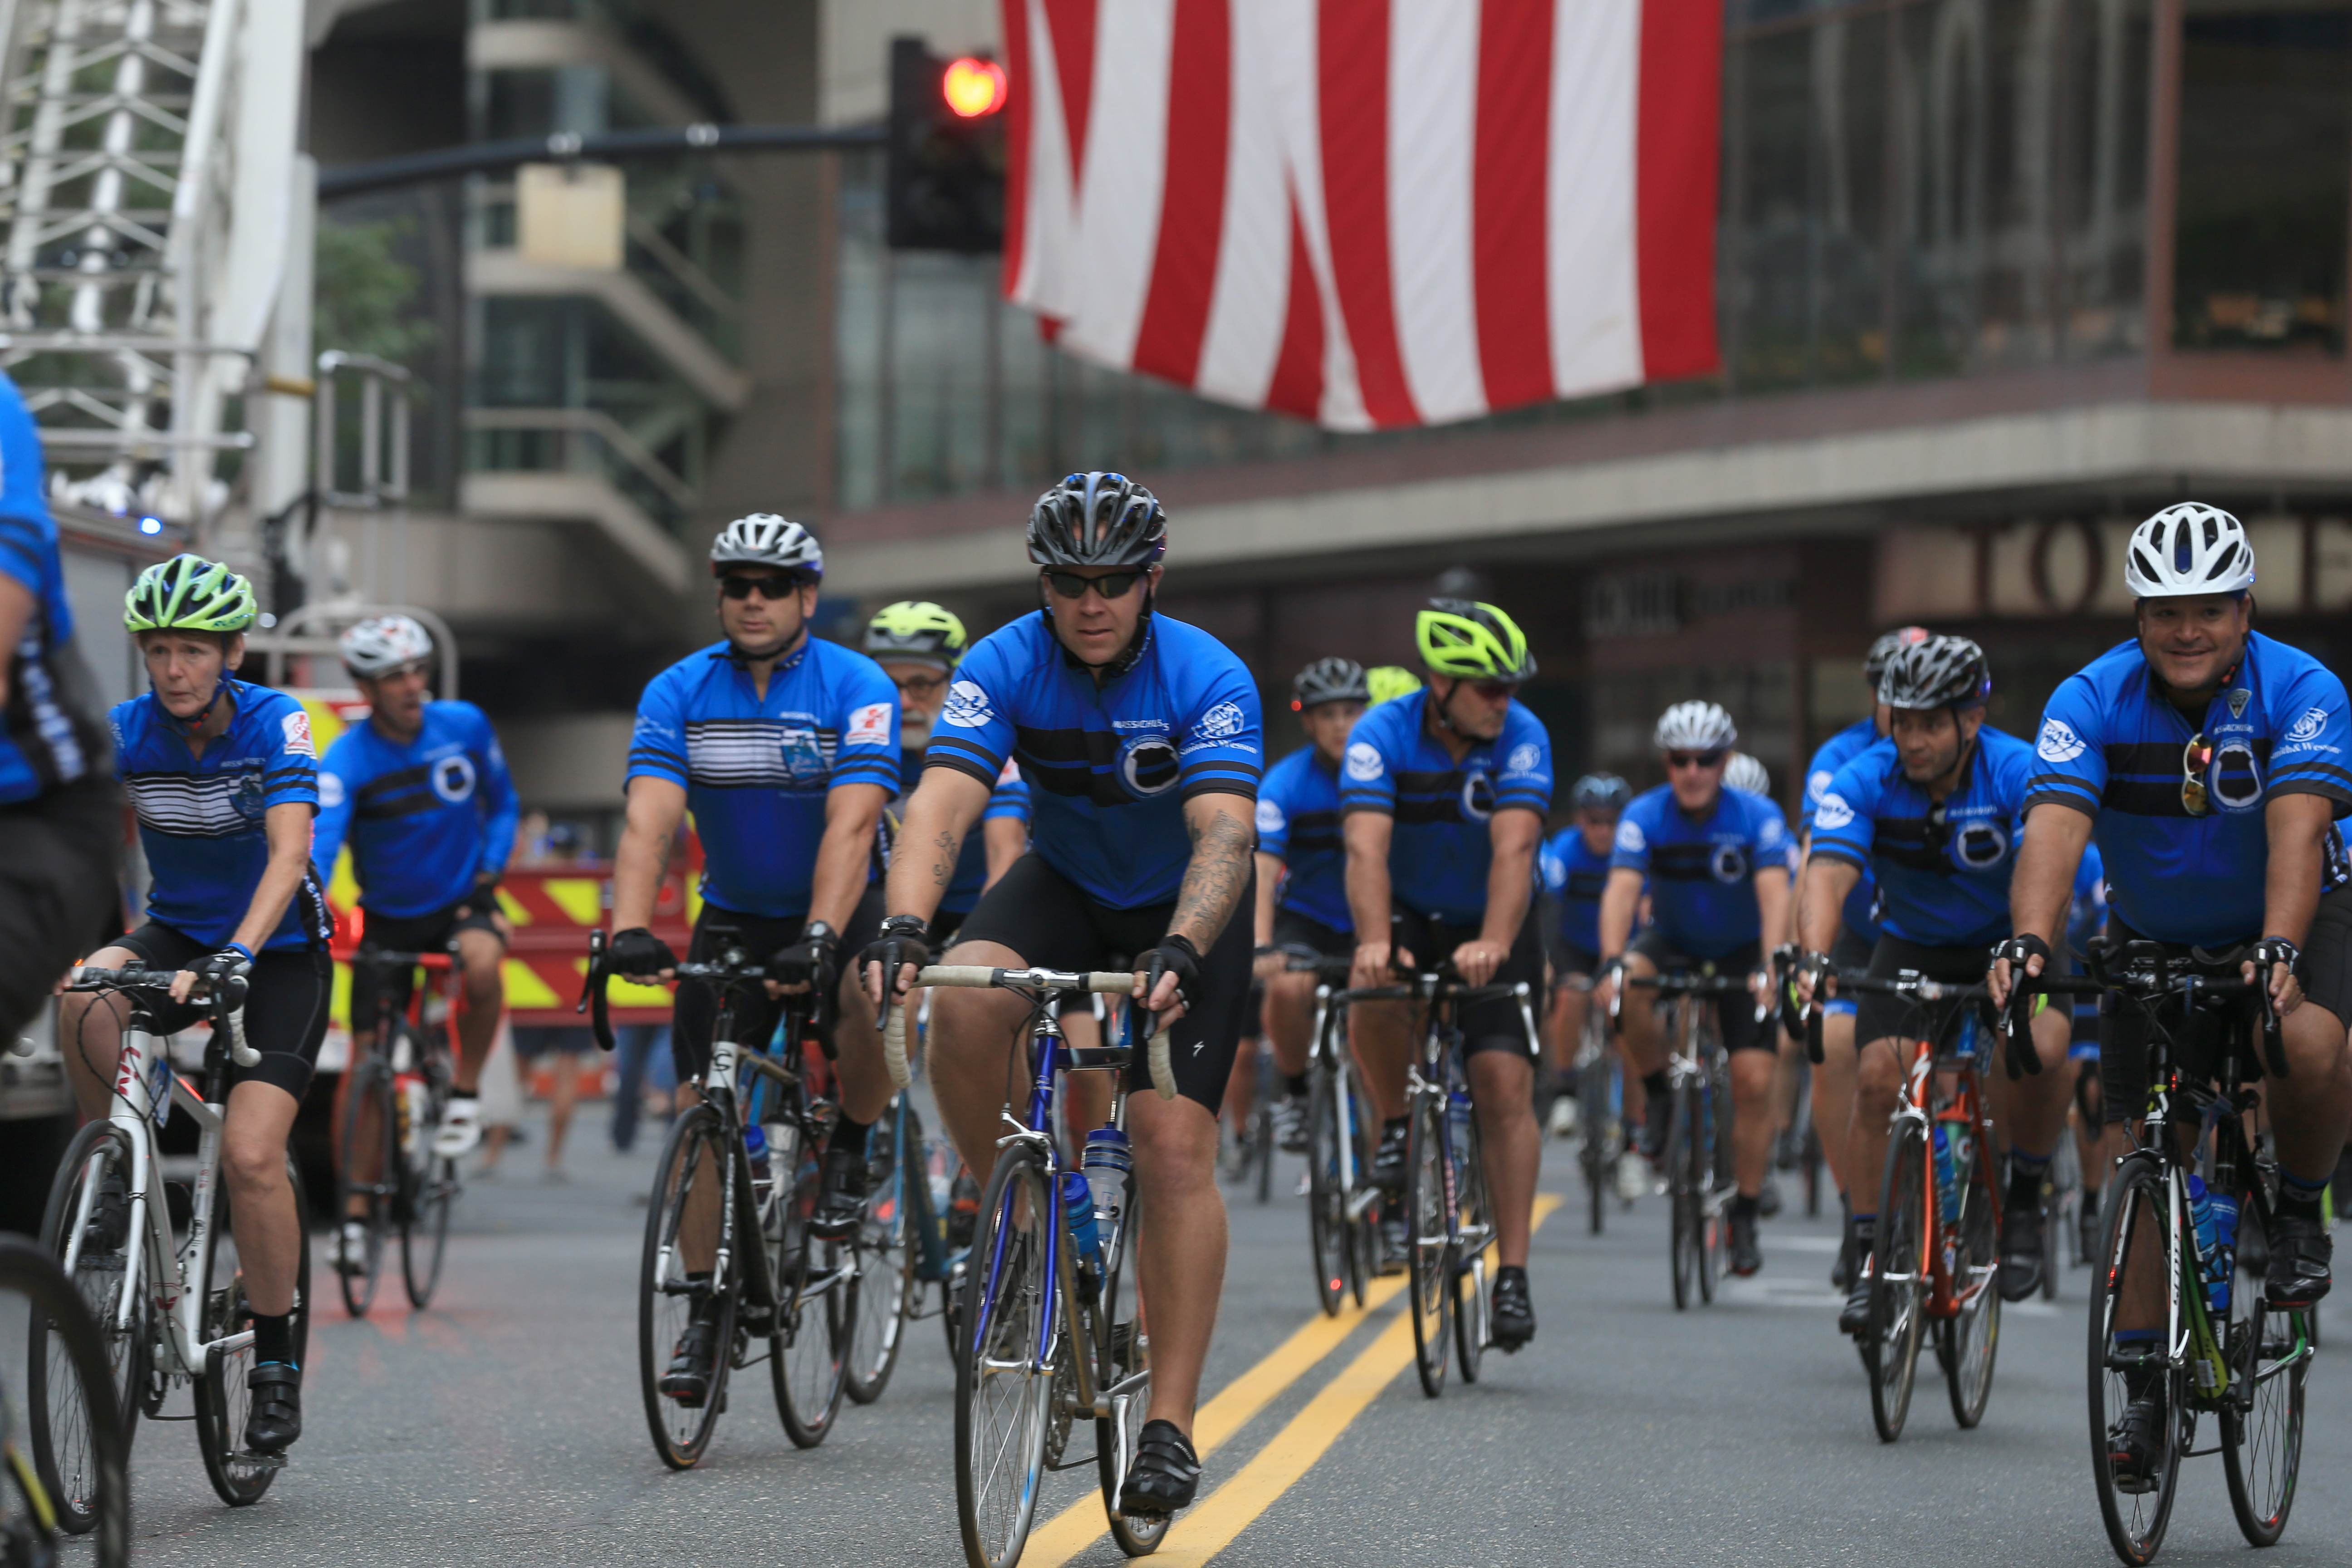 Ride to Remember, the annual tribute to fallen police and firefighters, launches 100+ mile bike ride from Springfield to Boston on Saturday